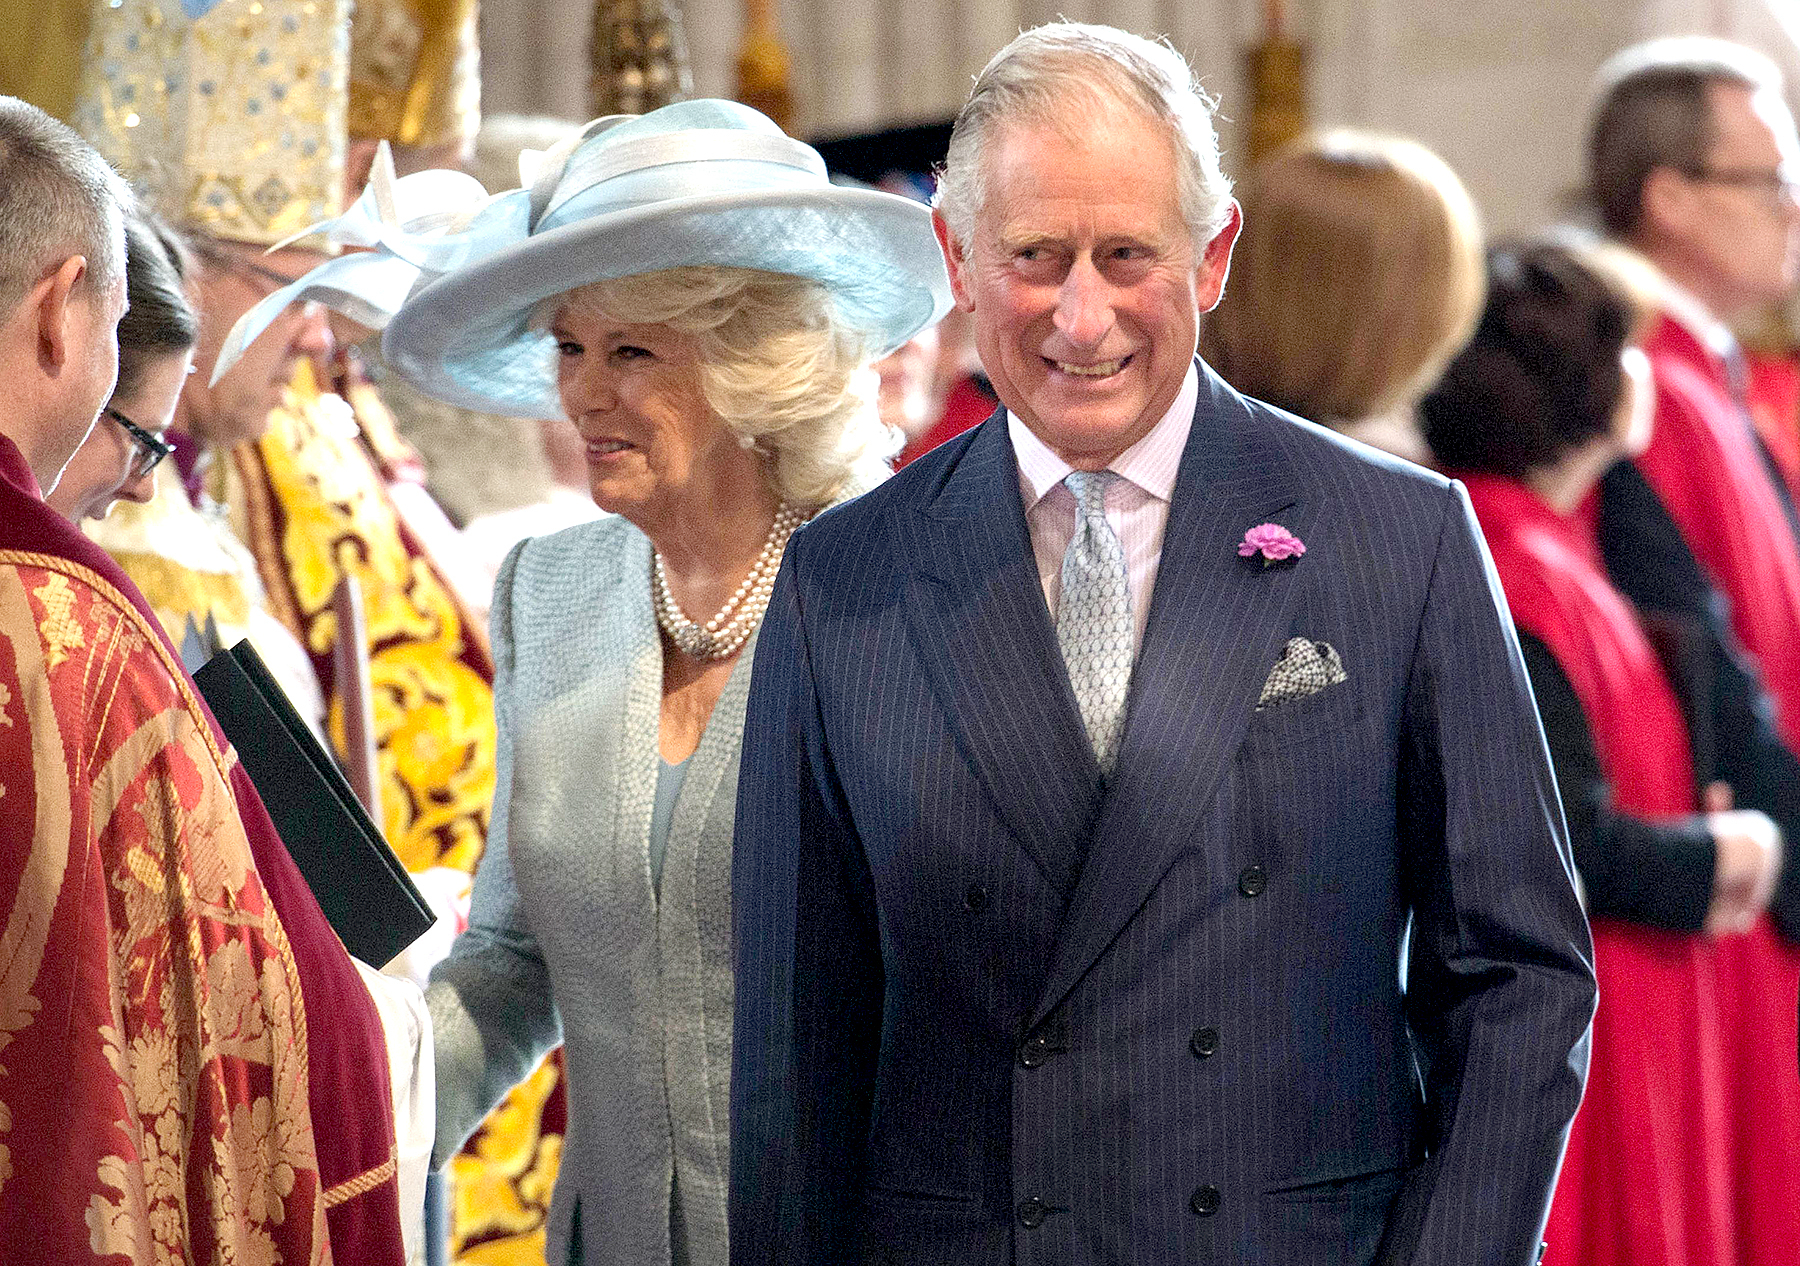 Britain's Prince Charles, Prince of Wales and Britain's Camilla, Duchess of Cornwall arrive to attend a national service of thanksgiving for the 90th birthday of Britain's Queen Elizabeth II at St Paul's Cathedral in London on June 10, 2016.